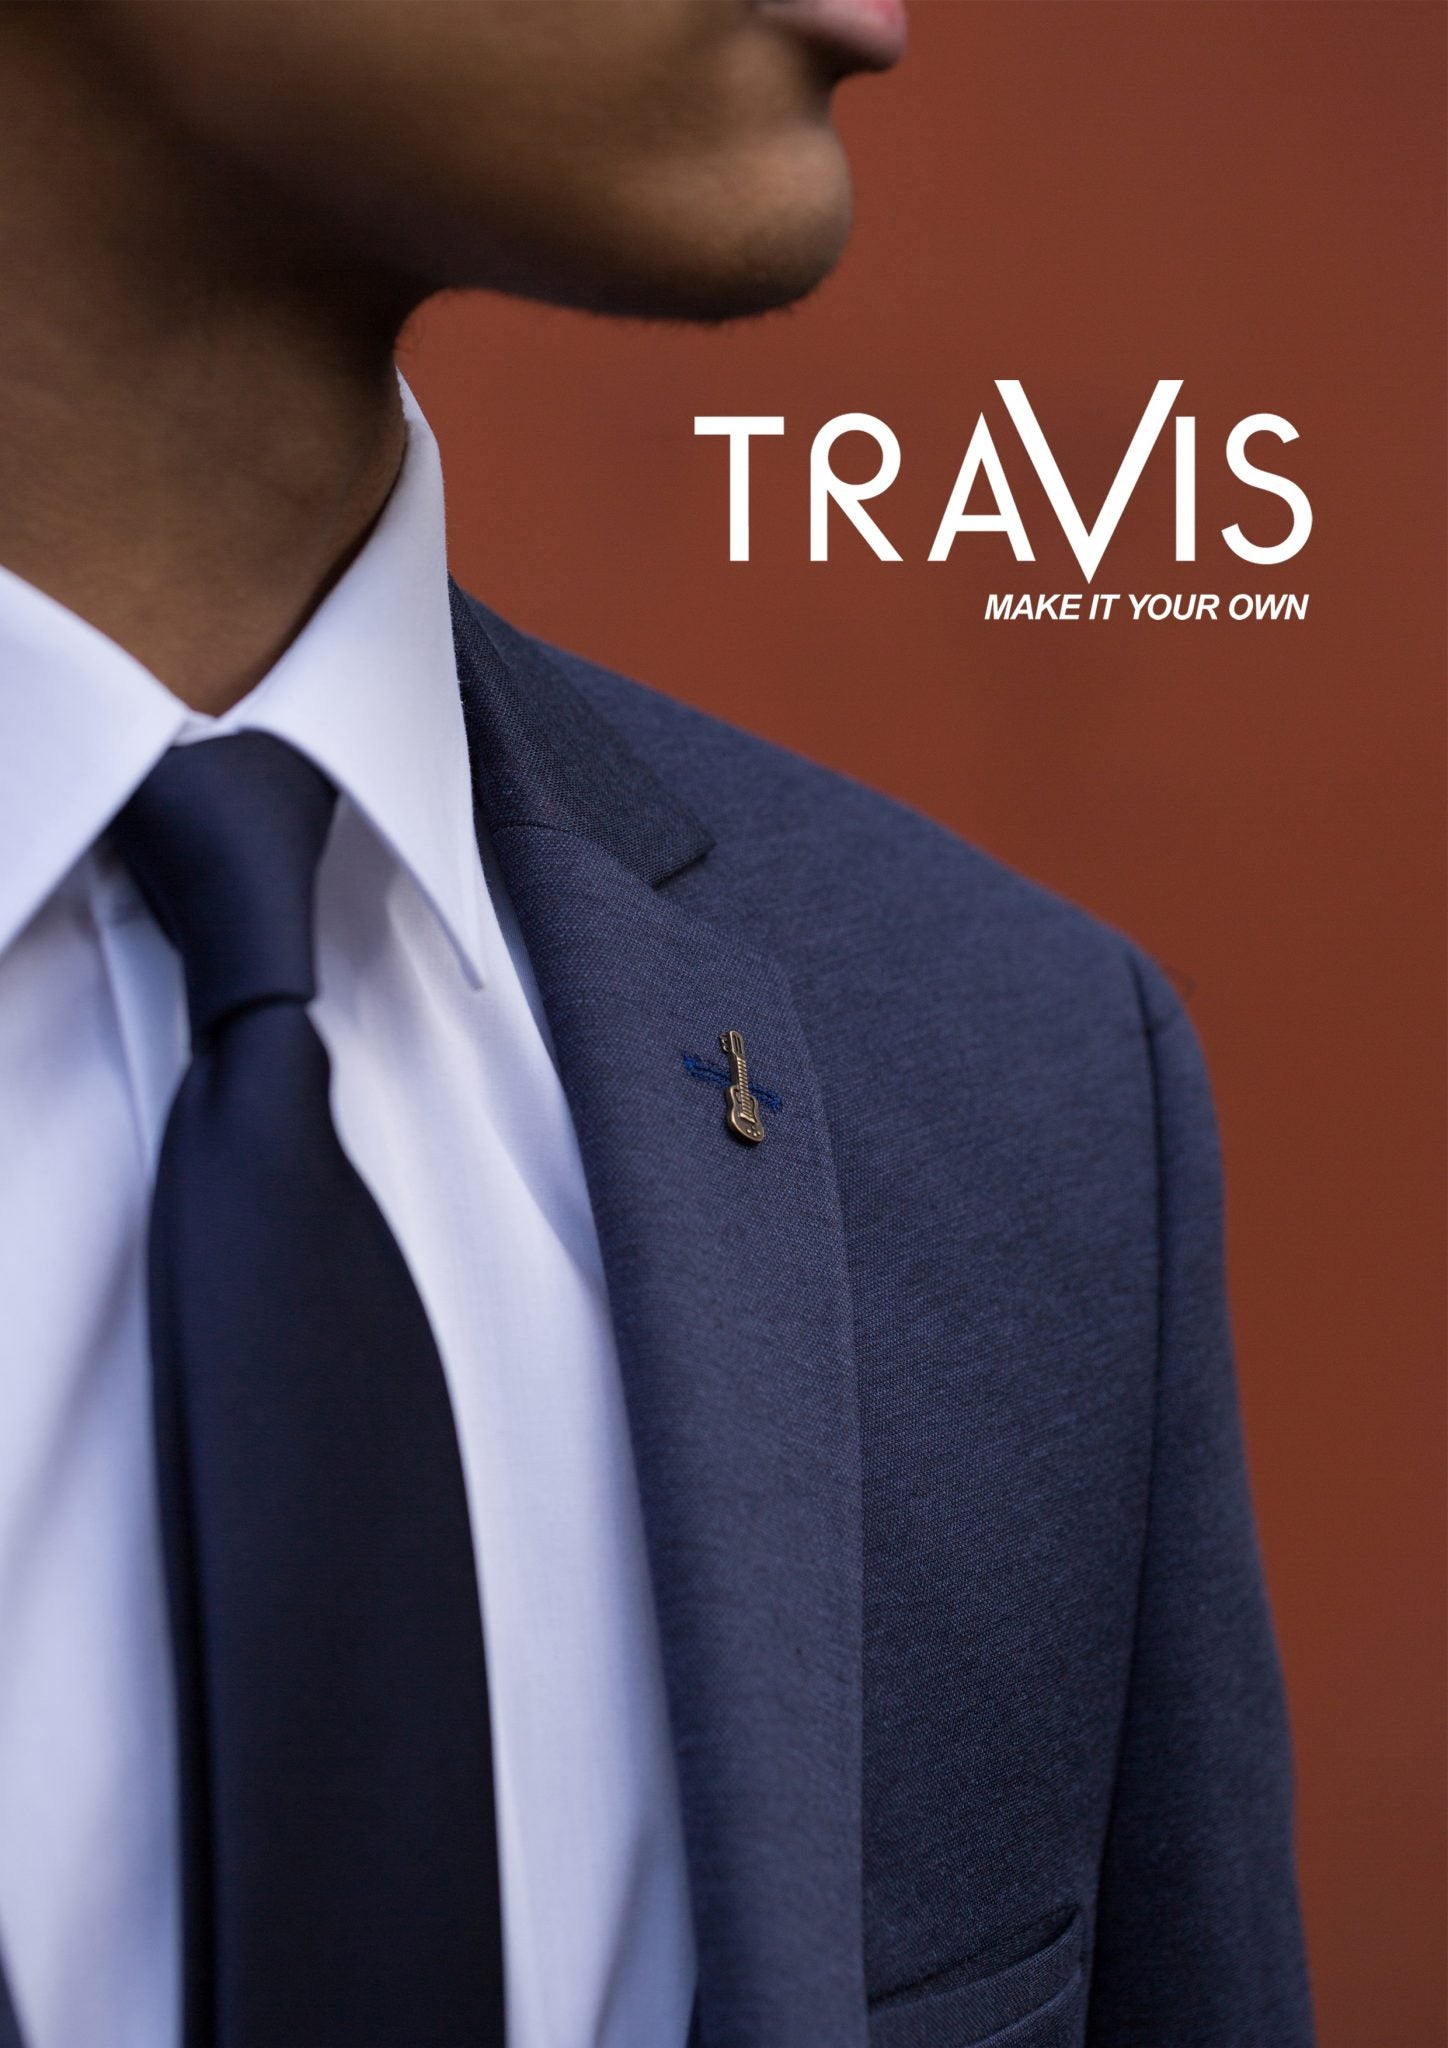 Travis By Benetti Menswear, Benetti Menswear, Travis Suits, Benetti Suits